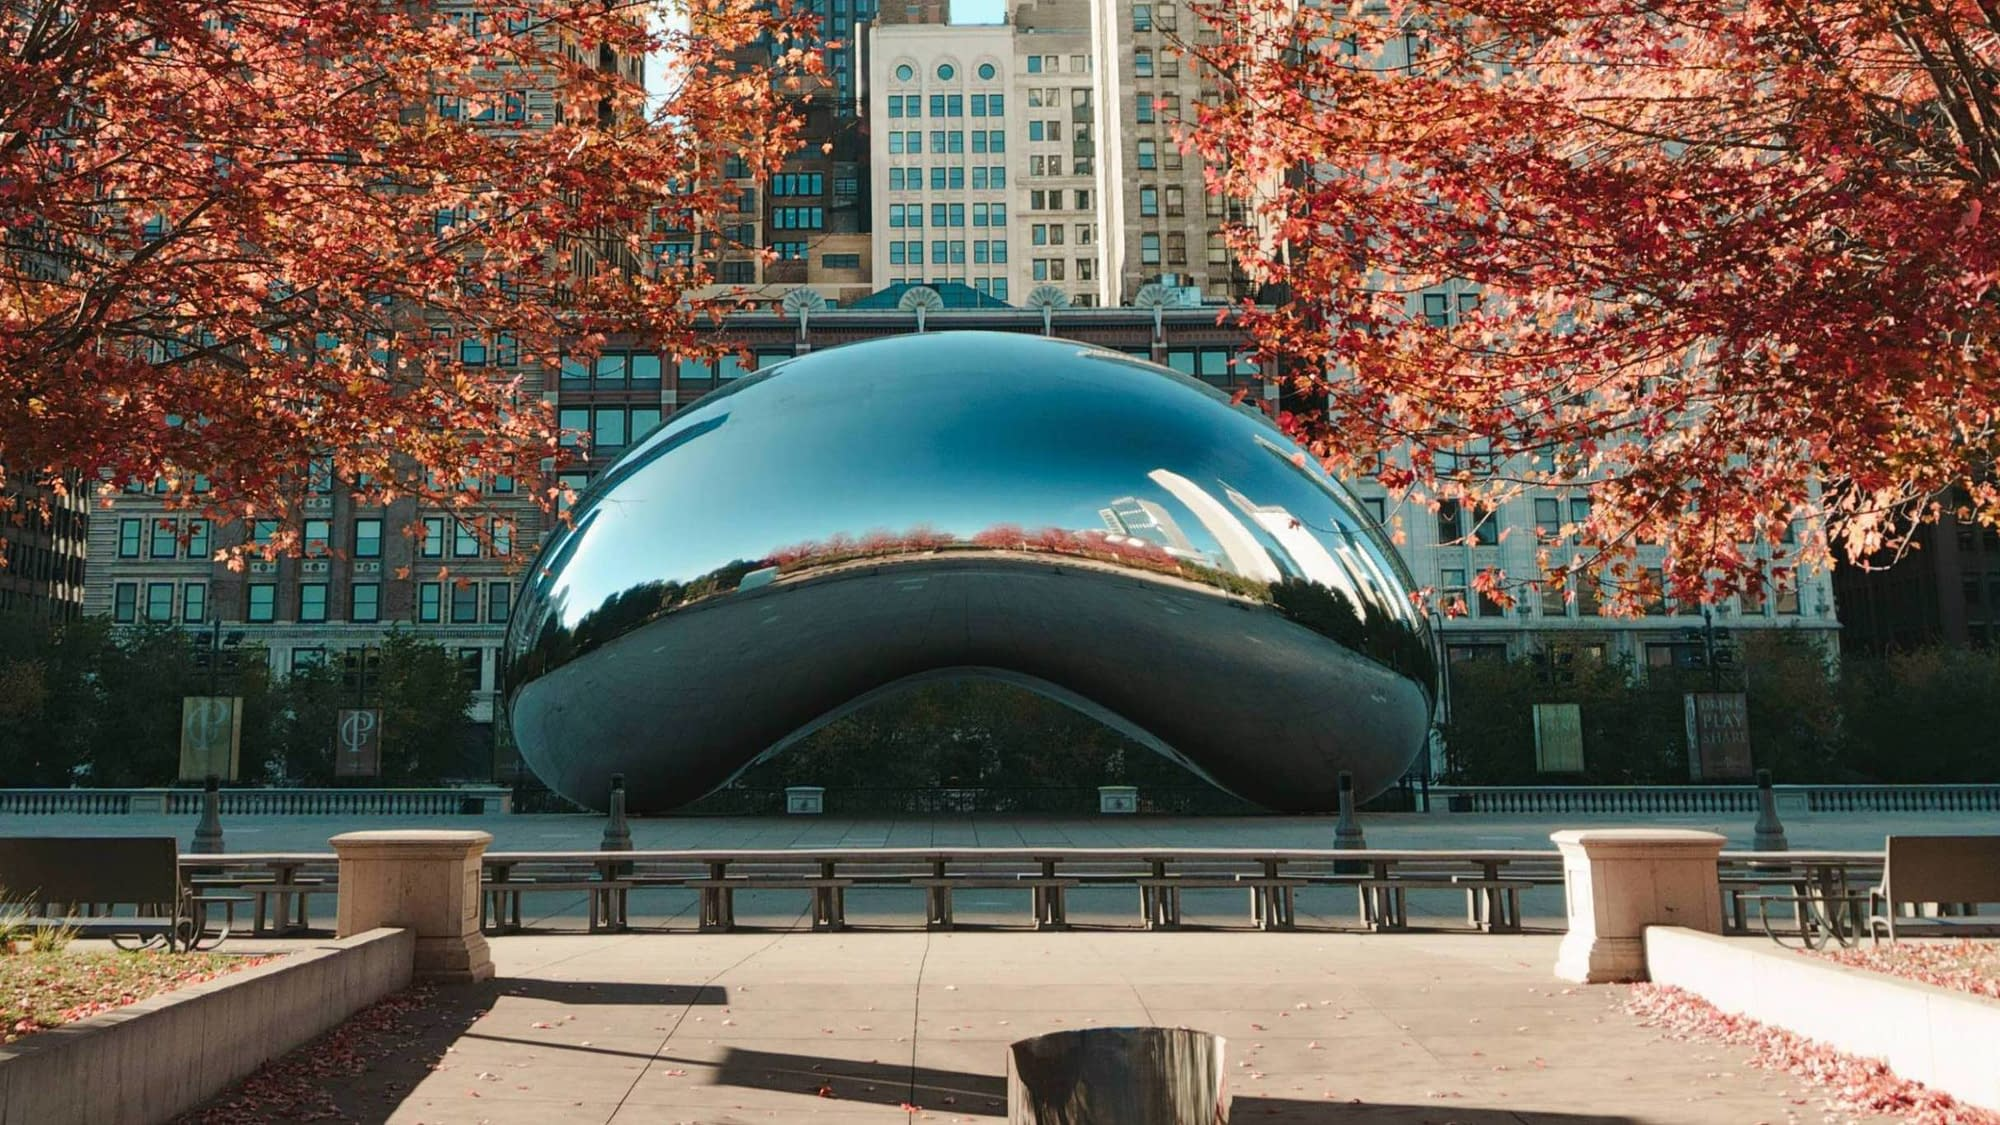 A picture of the famous bean from Chicago